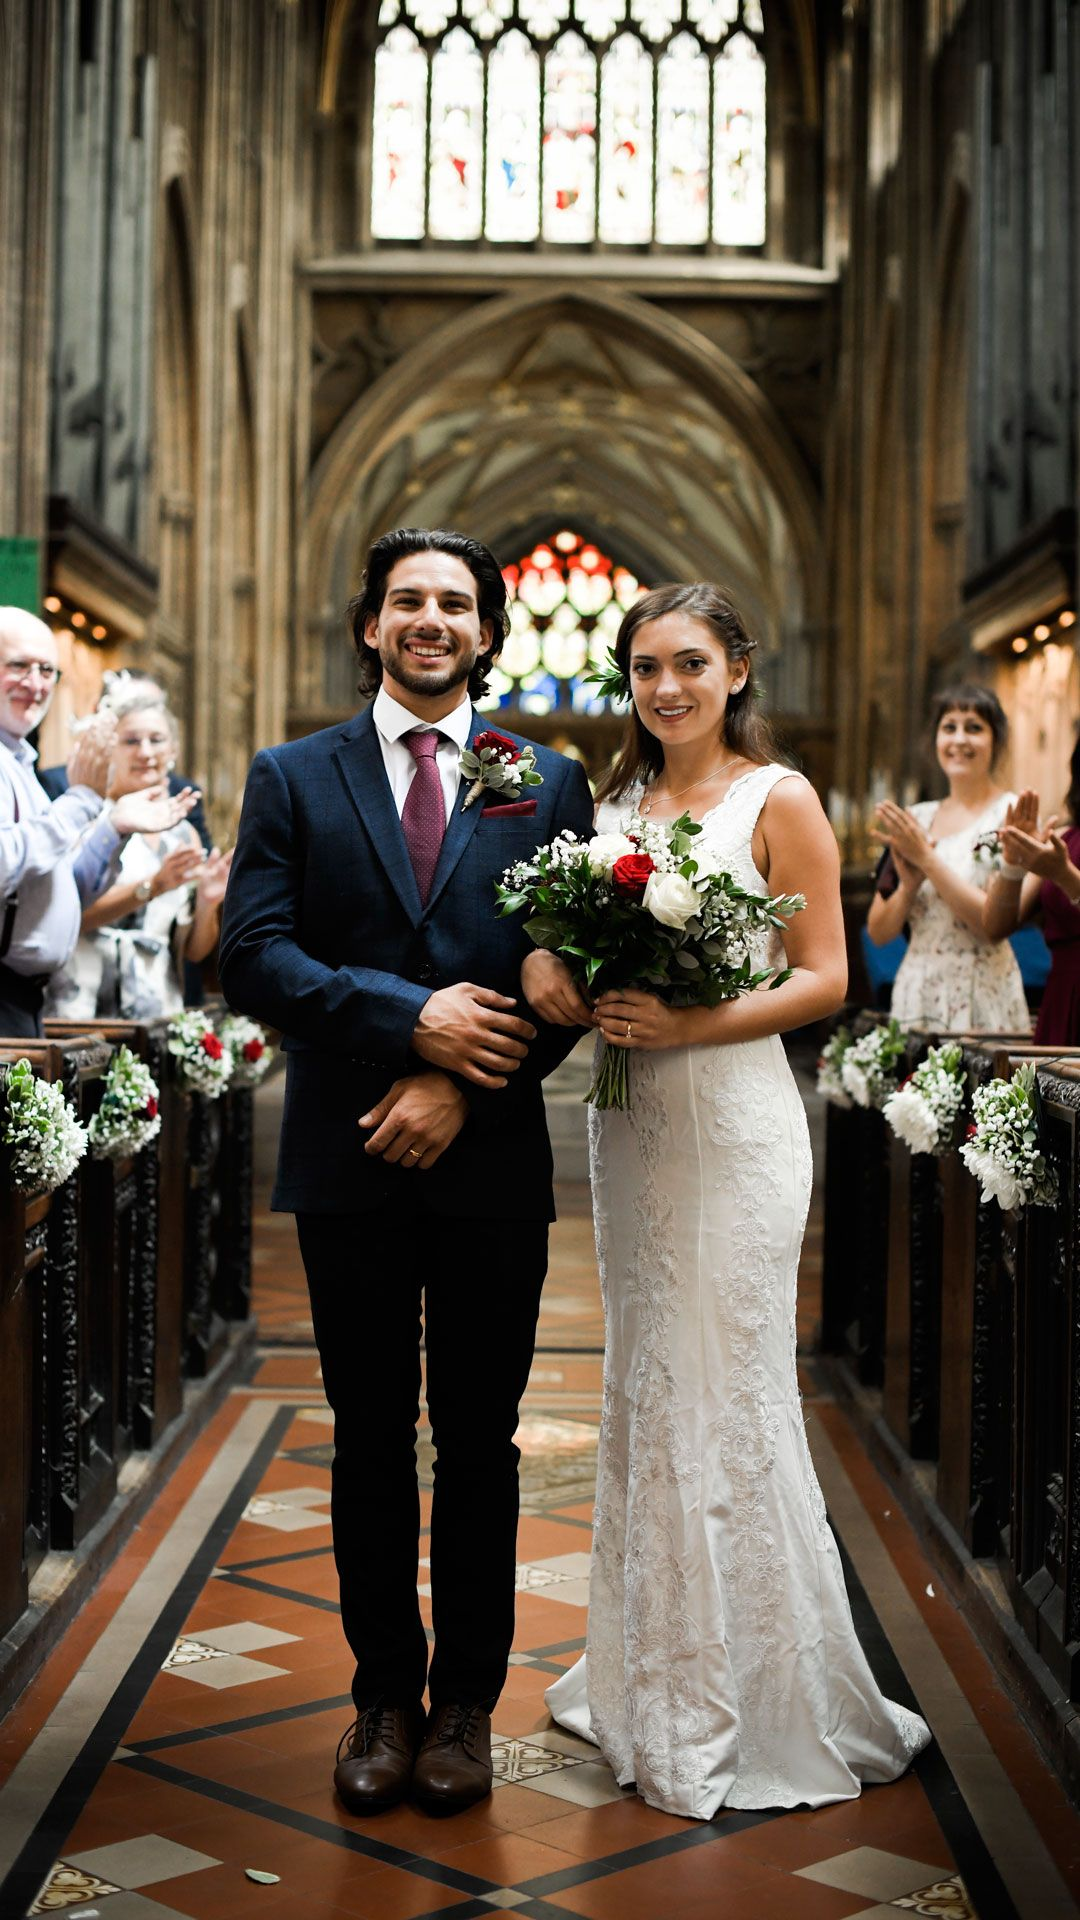 Booking A Church Wedding Ceremony Everything You Need to